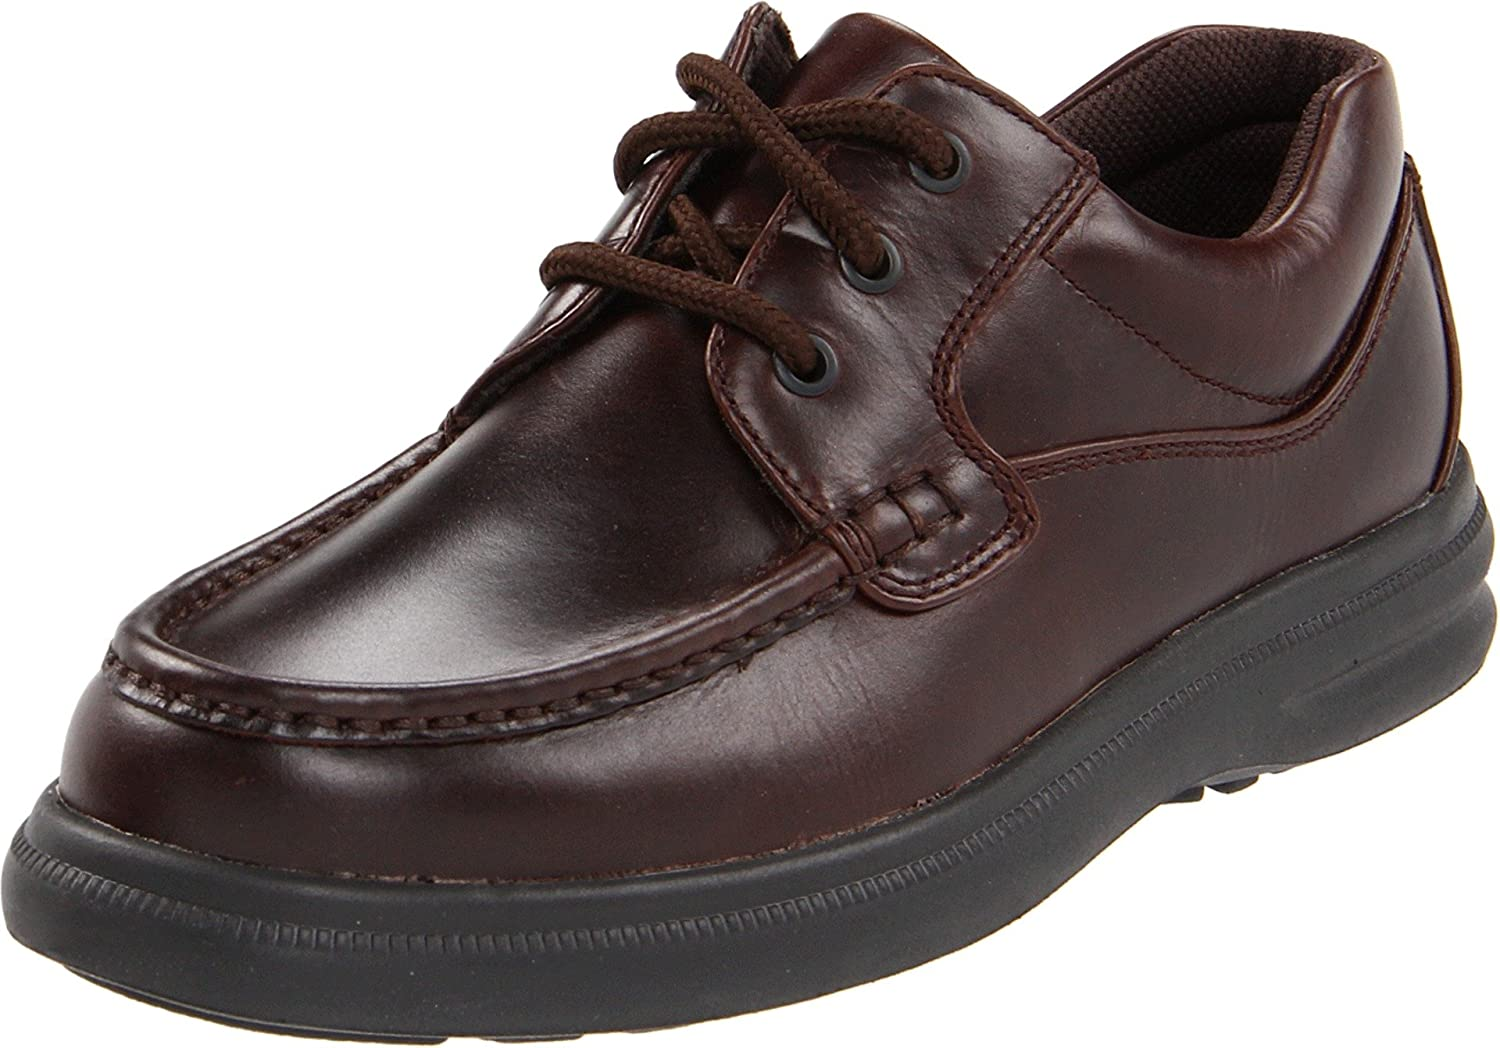 Hush Puppies Men's Gus Oxford B001AWY6LQ 9 D(M) US|Dark Brown